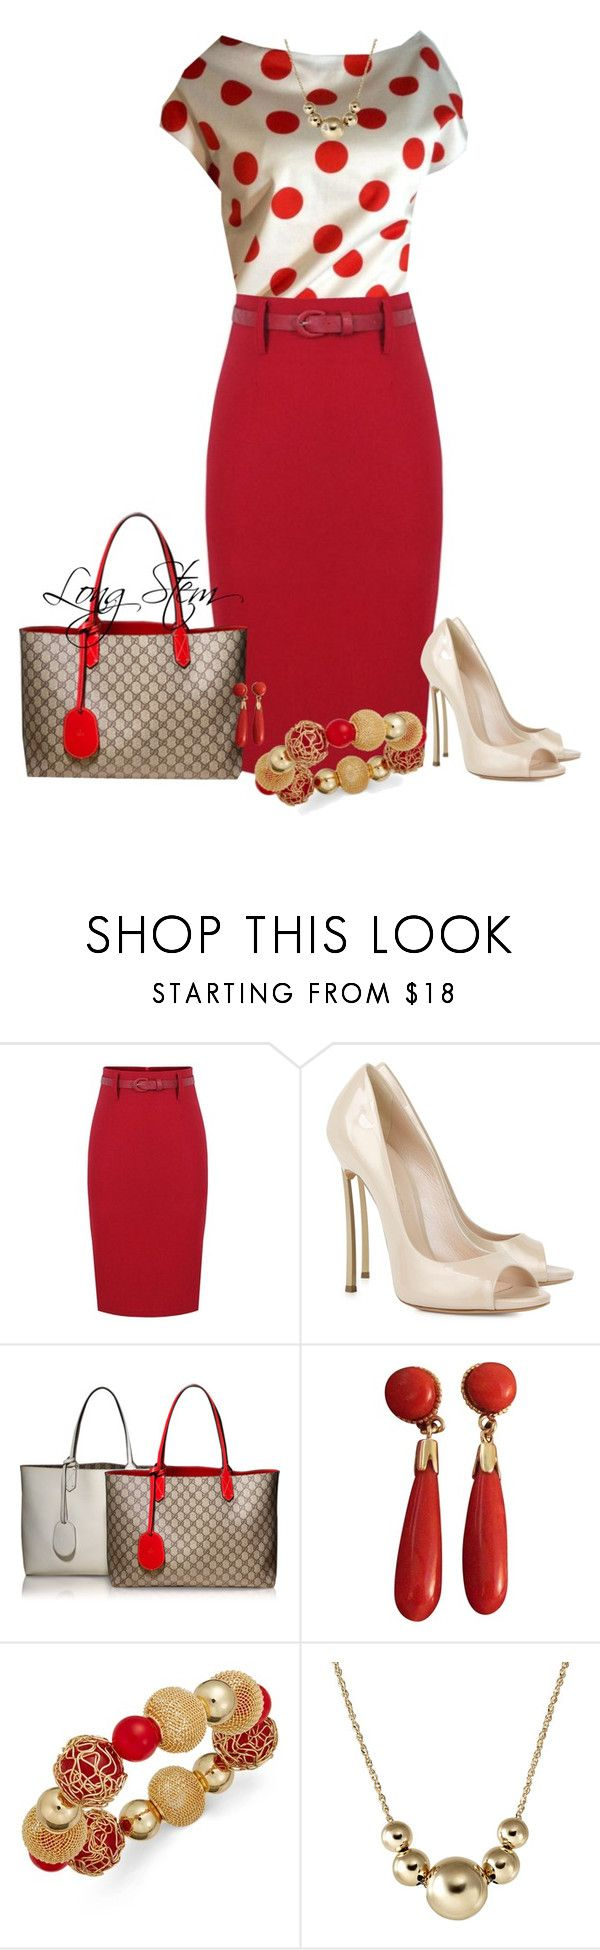 """10/18/15"" by longstem ❤ liked on Polyvore featuring Casadei, Gucci, Vintage and Style & Co."